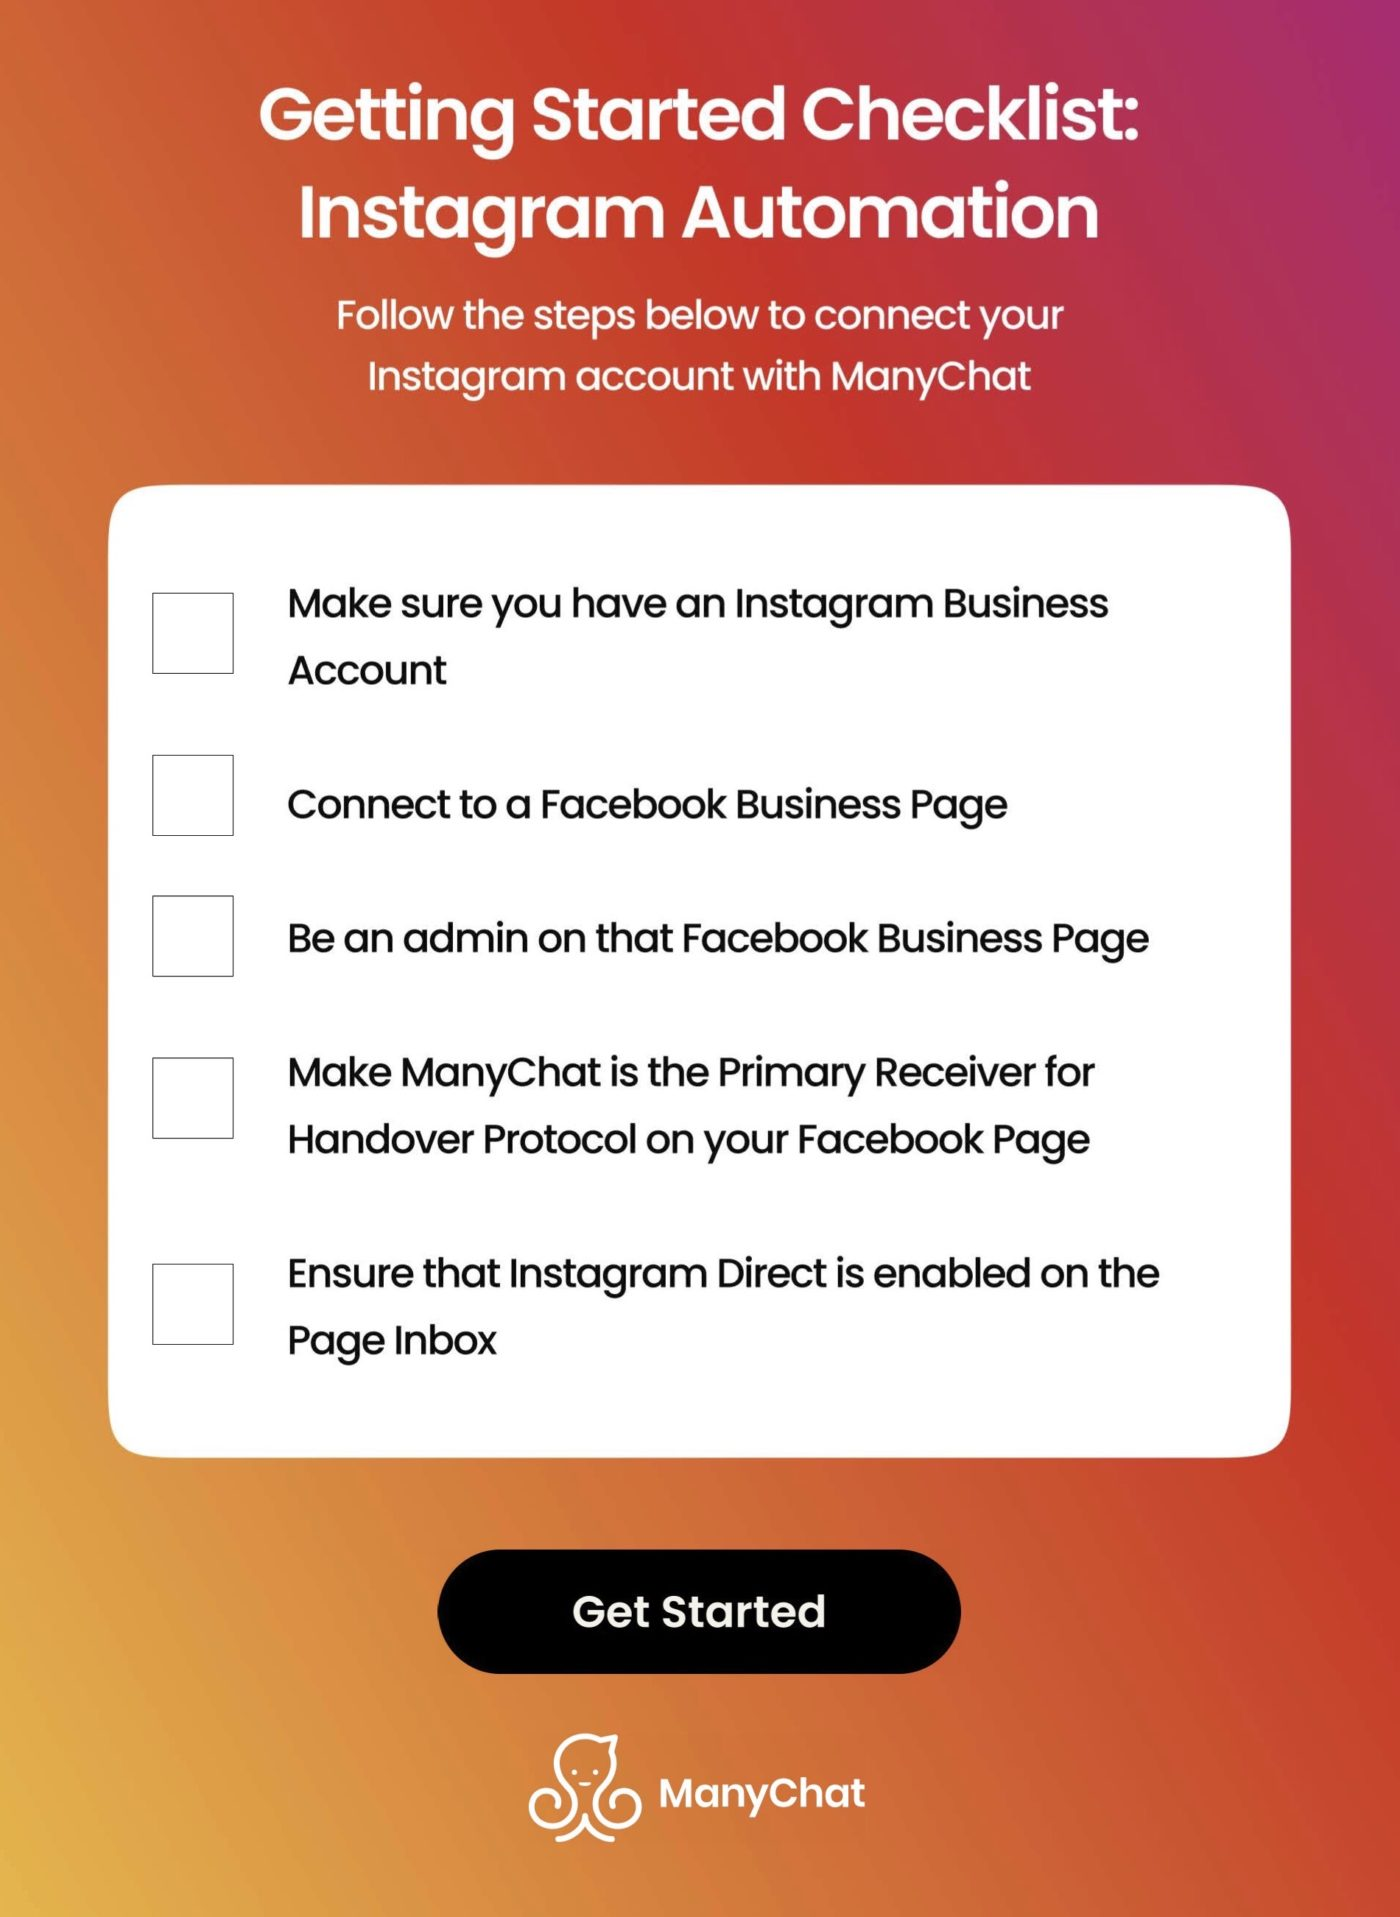 how to get started with instagram automation